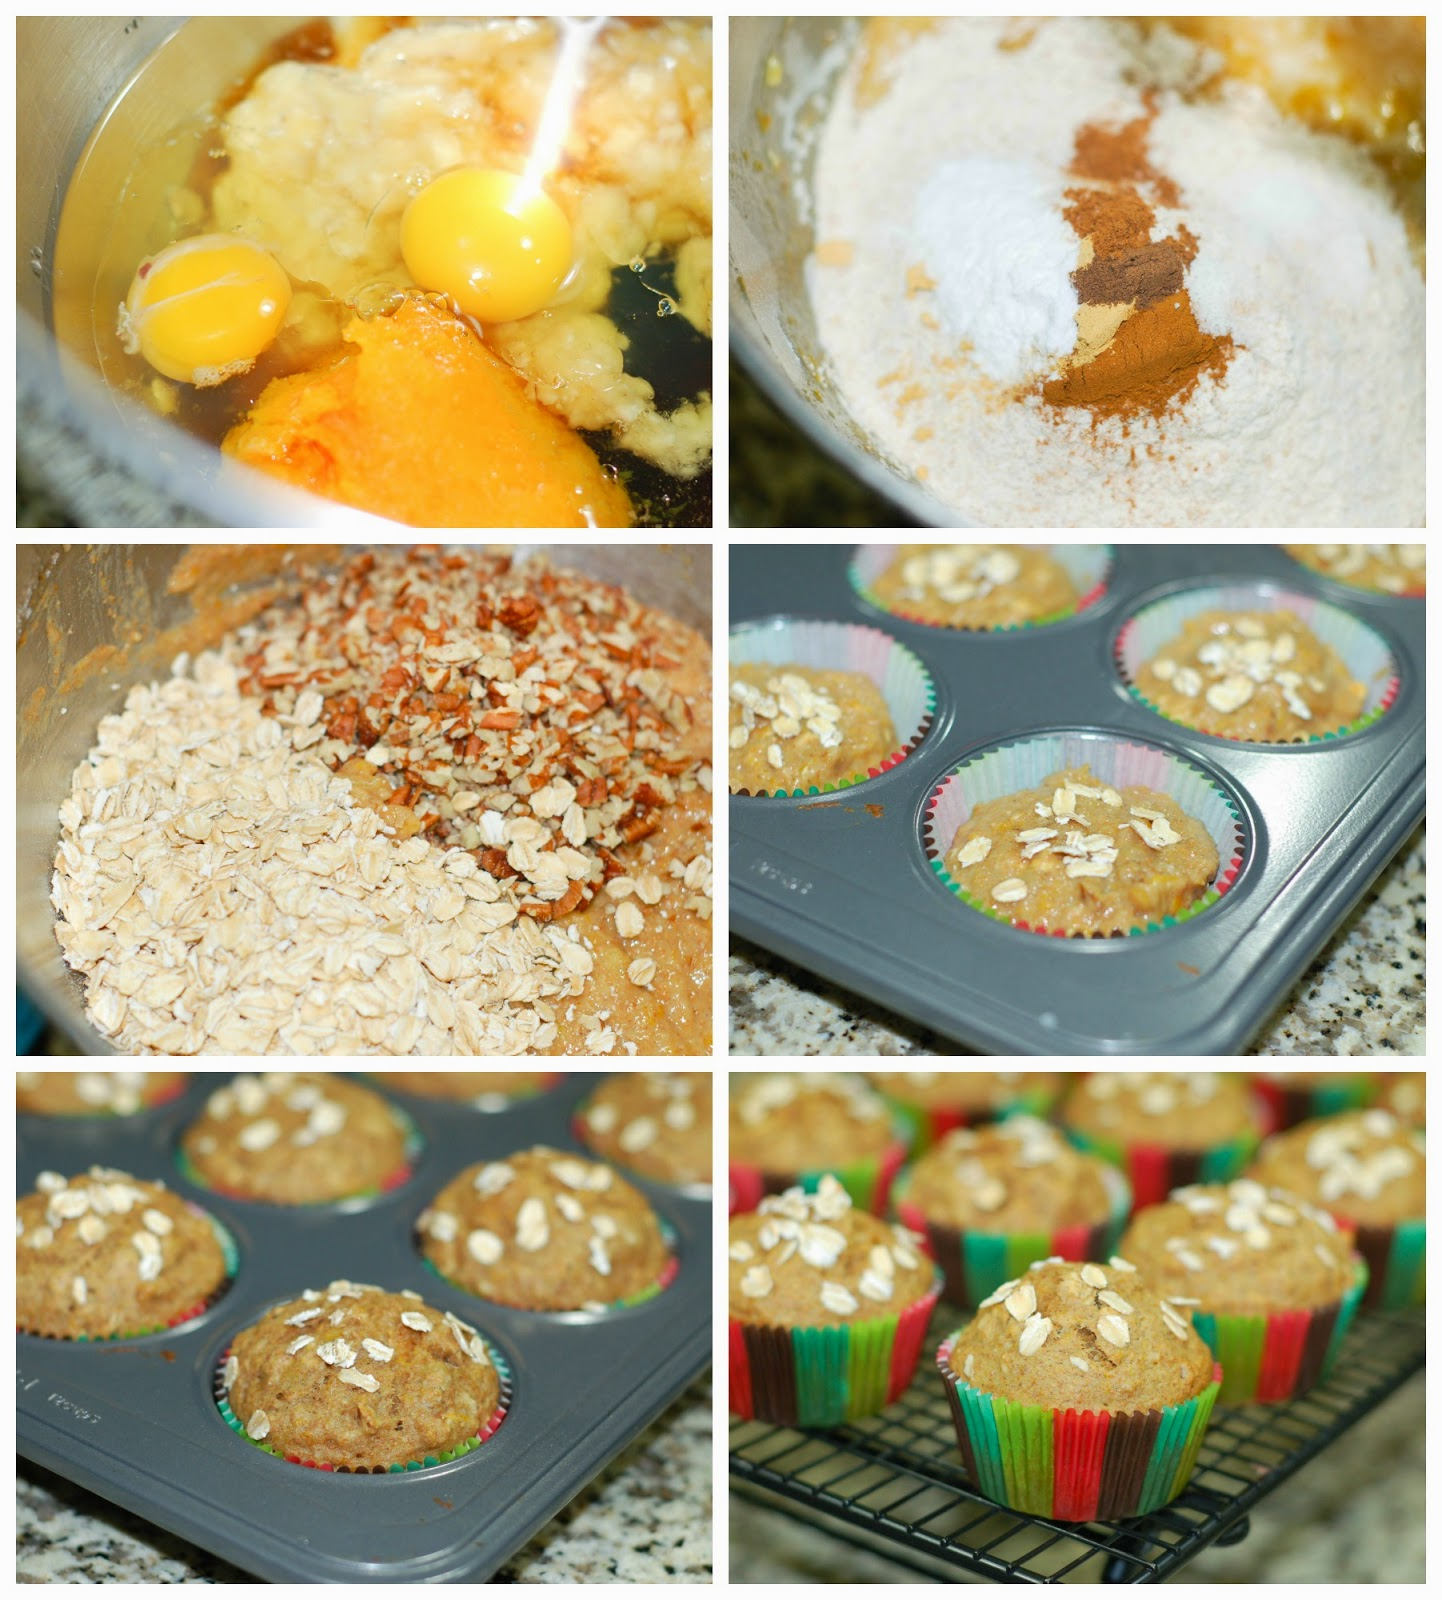 Making Butternut Squash Muffins by The Sweet Chick